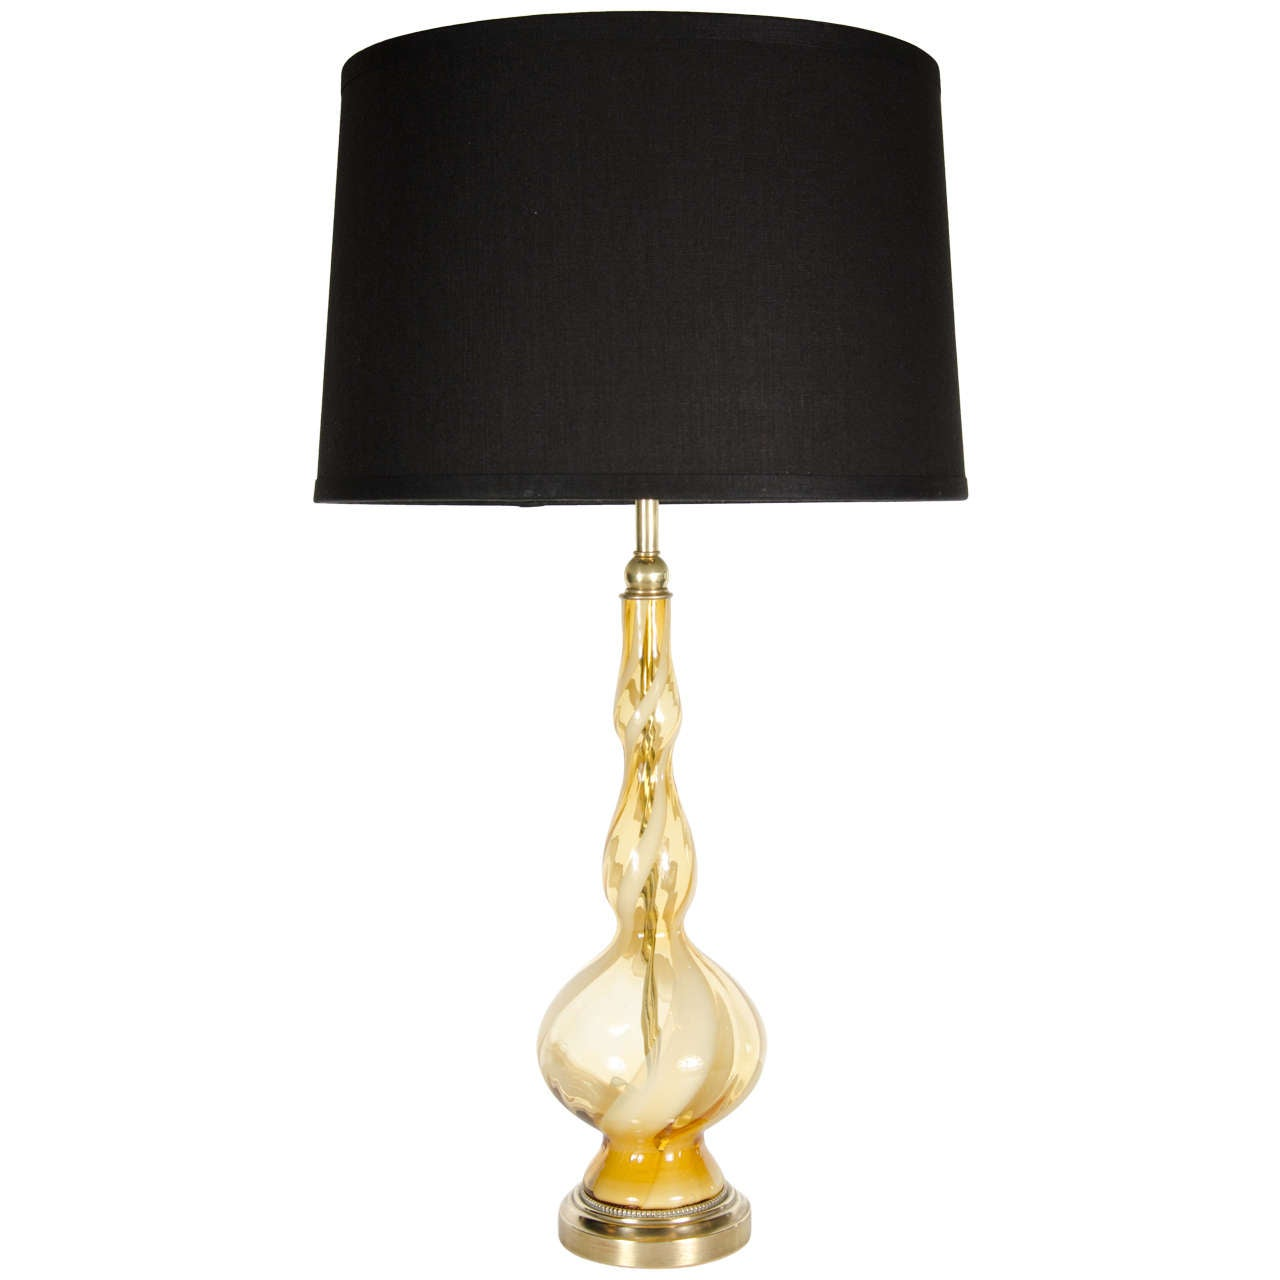 exquisite hand blown murano glass table lamp at 1stdibs. Black Bedroom Furniture Sets. Home Design Ideas